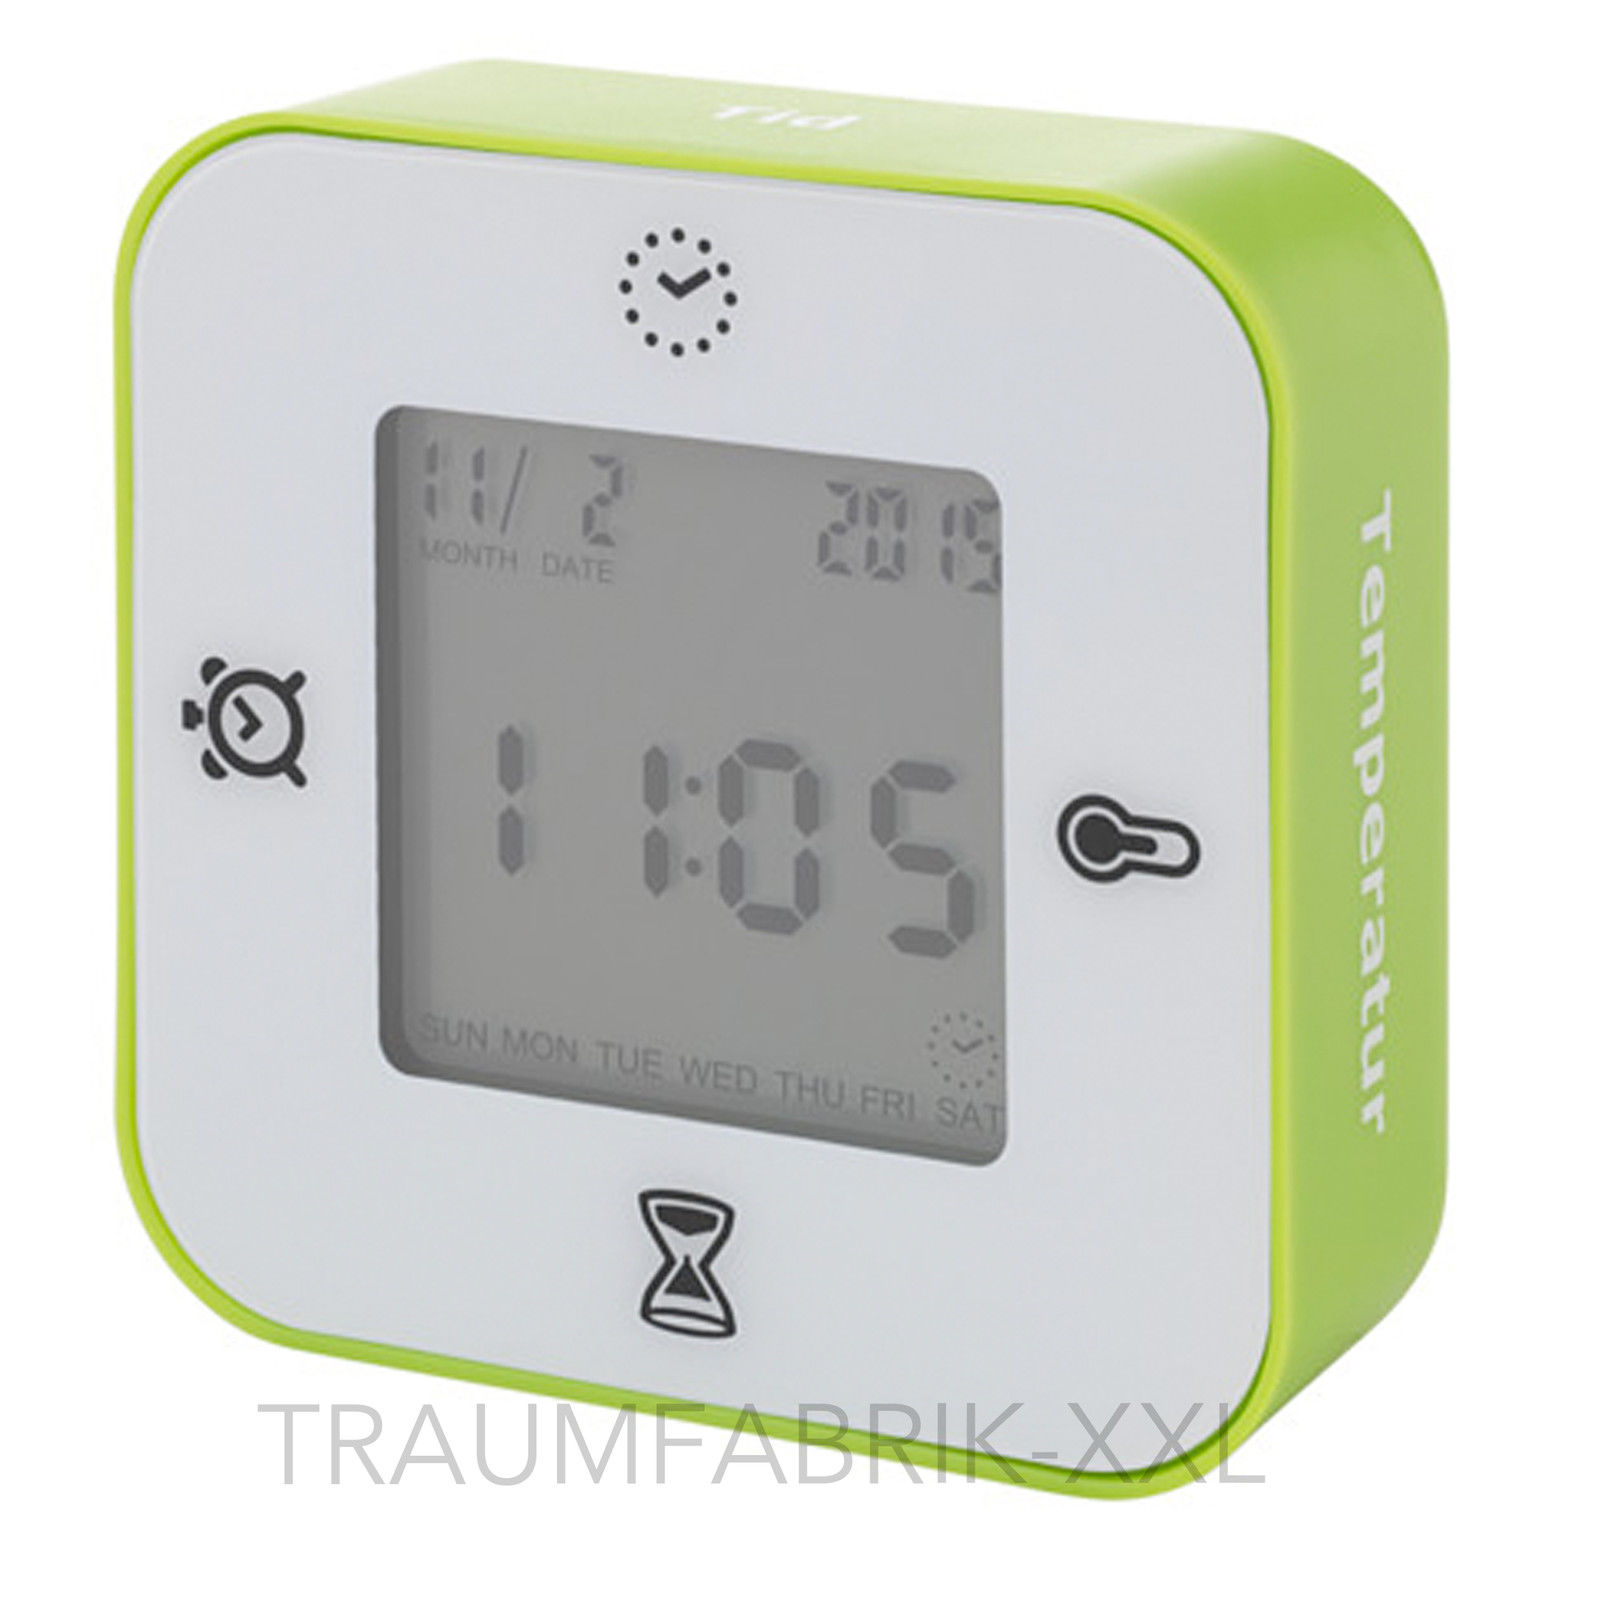 ikea l ttorp uhr wecker mit thermometer timer einfach drehen drehsensor neu traumfabrik xxl. Black Bedroom Furniture Sets. Home Design Ideas